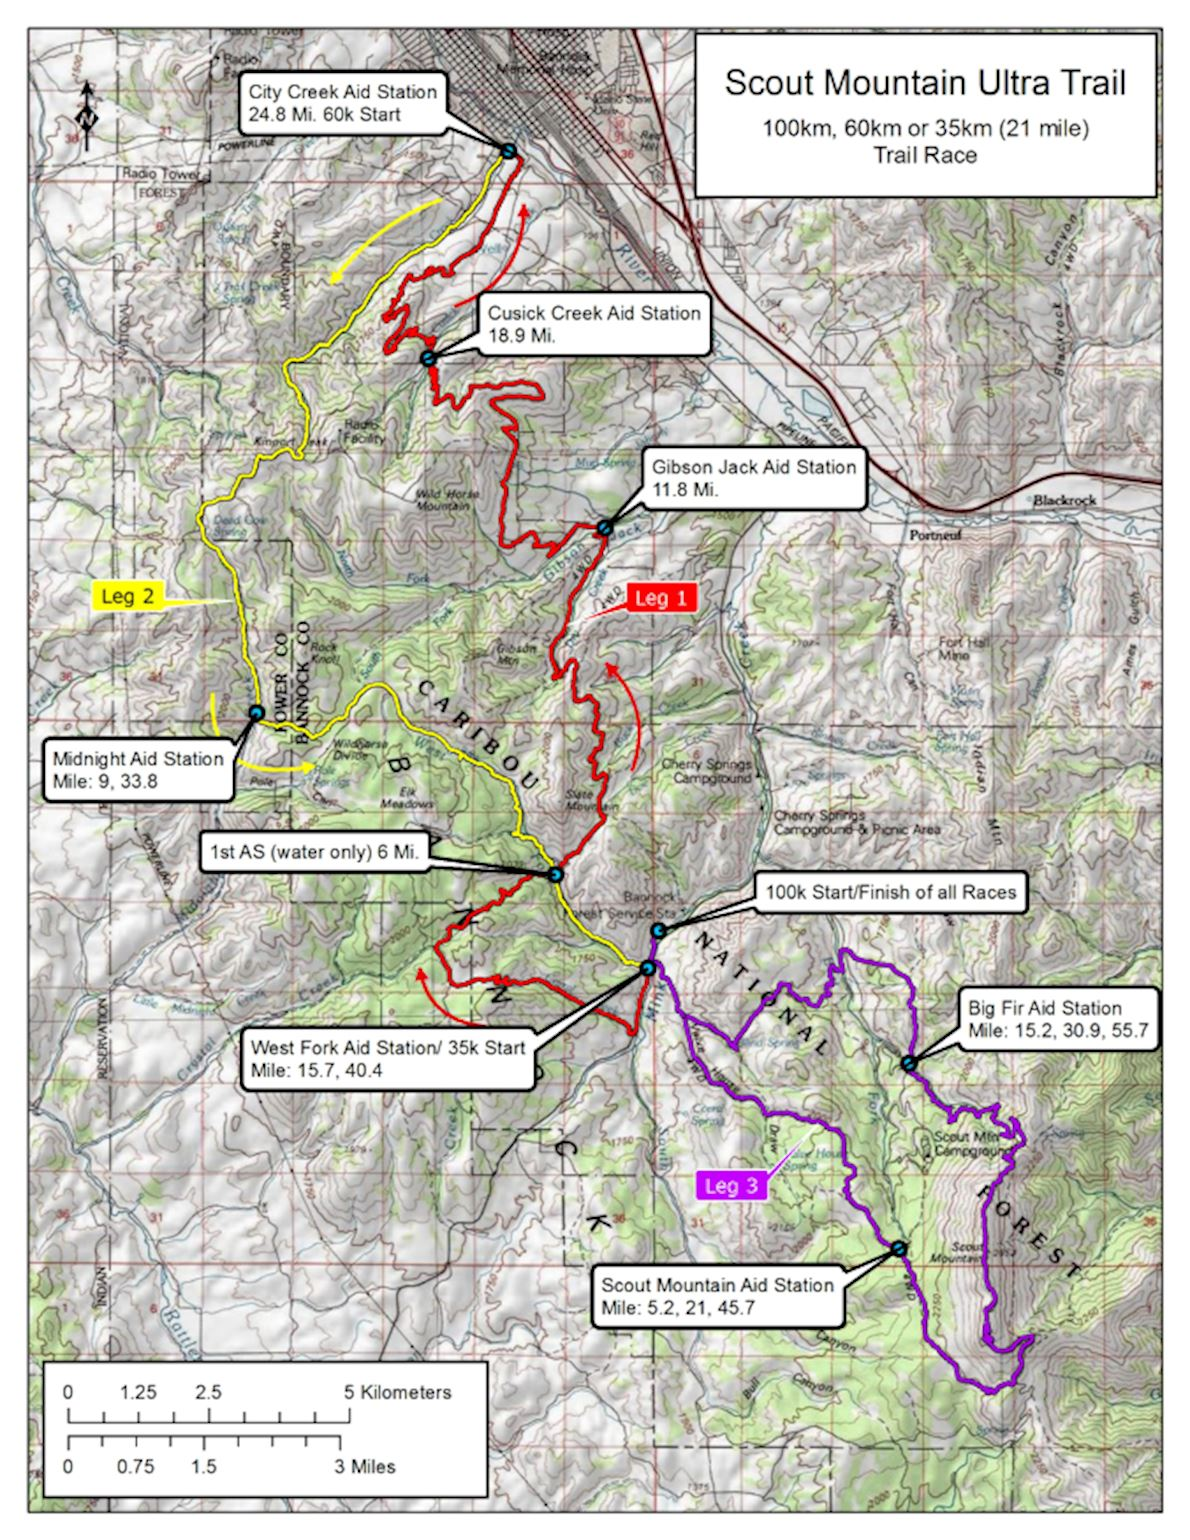 Scout Mountain Ultras Route Map